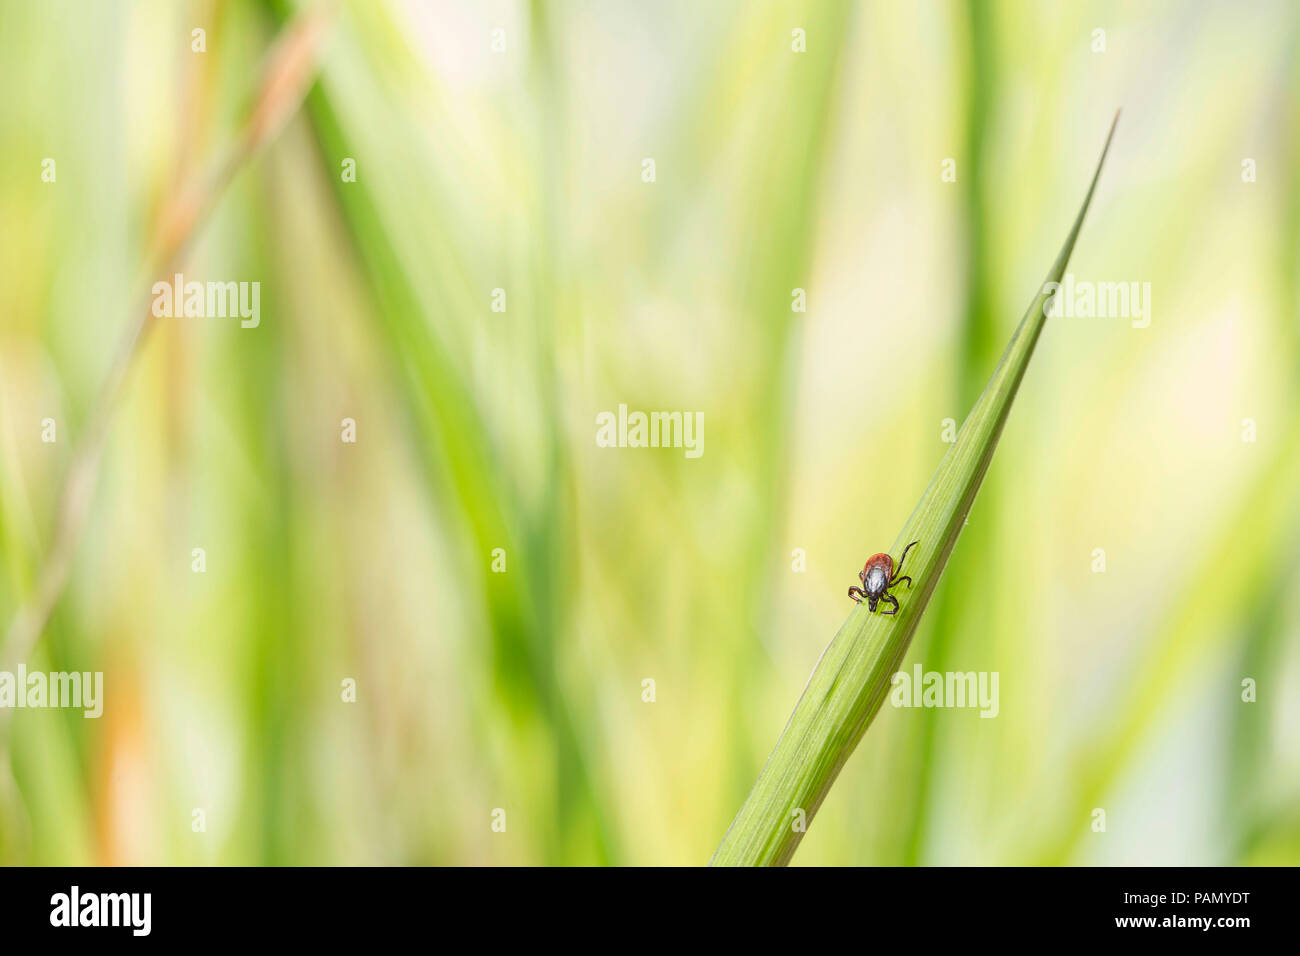 Castor Bean Tick (Ixodes ricinus) on a blade of grass. Germany - Stock Image